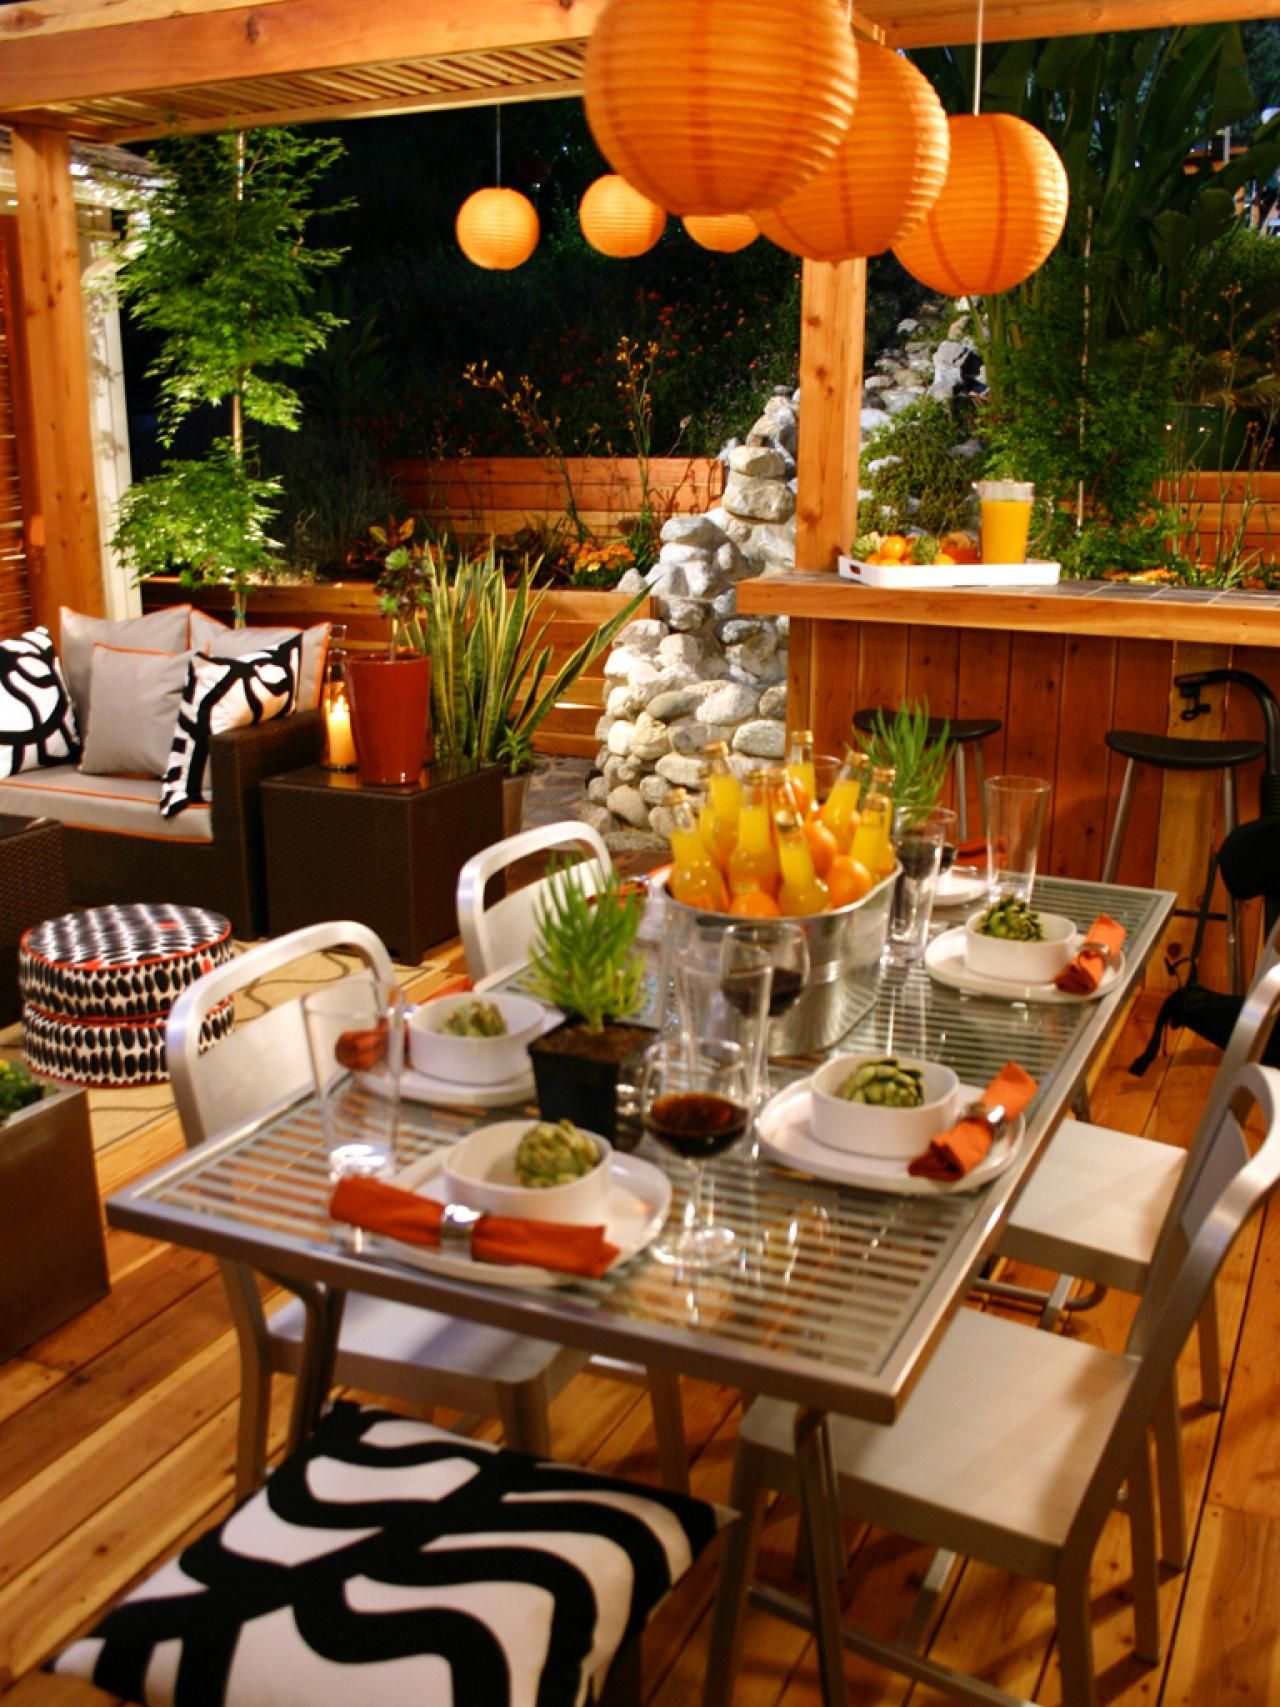 Perfect Tepanyaki Grill Table By Troy Adams Design | Grill Table, Fences And Garden Good Ideas